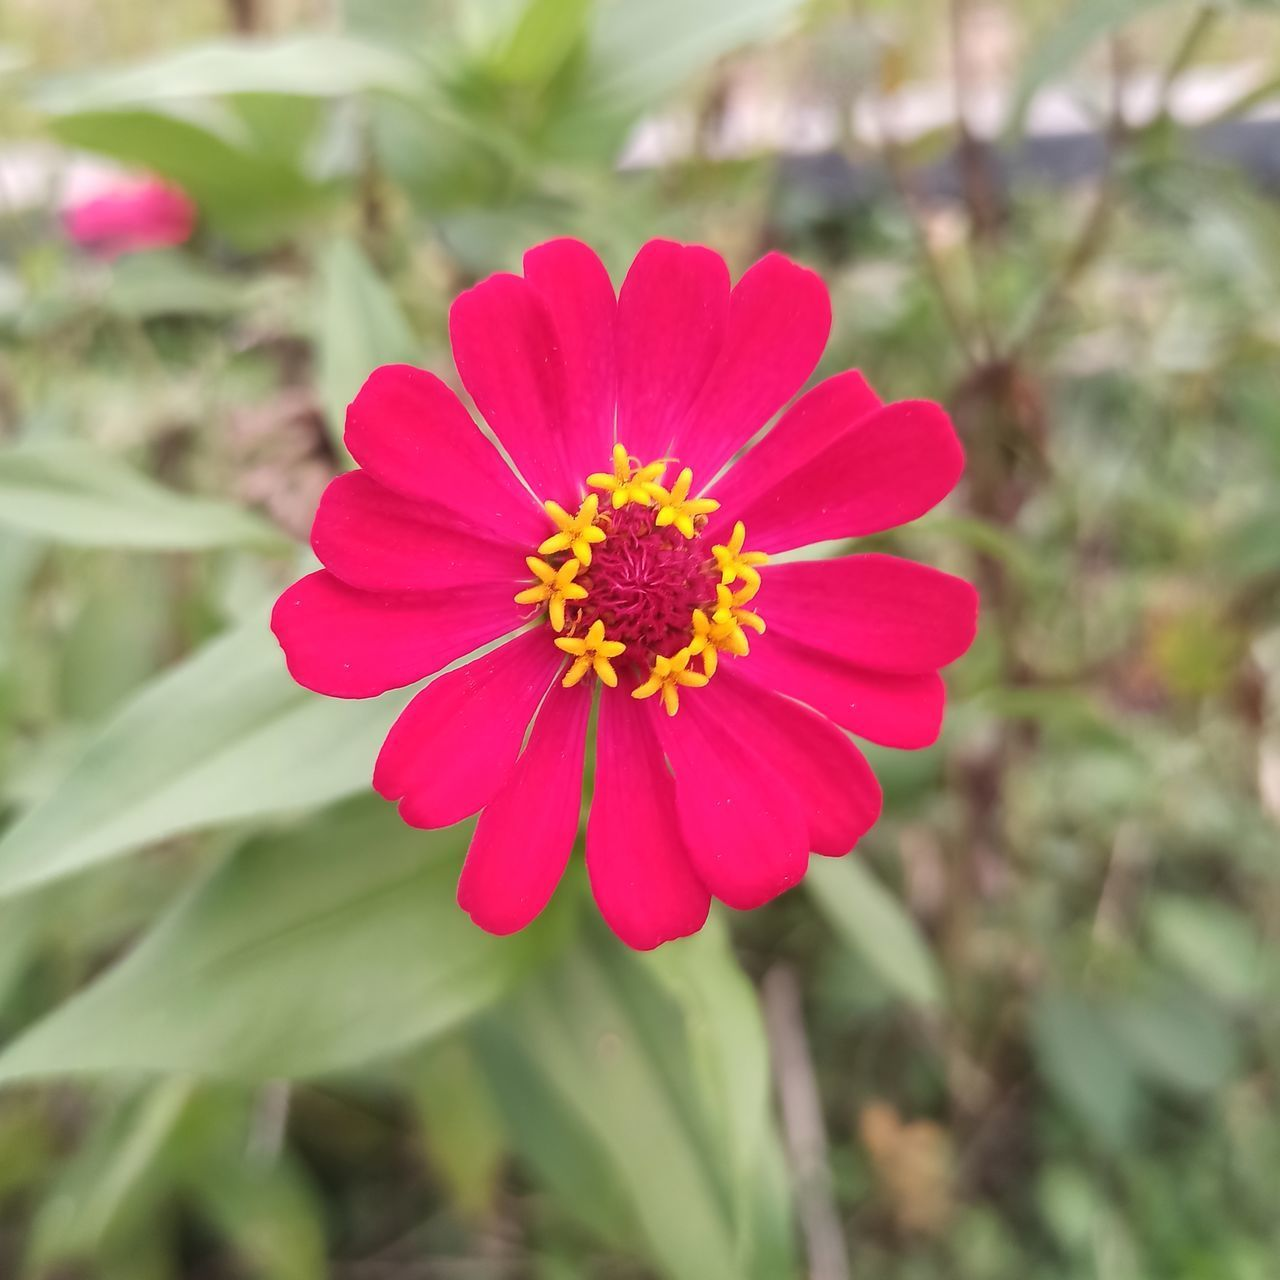 CLOSE-UP OF PINK AND RED FLOWER